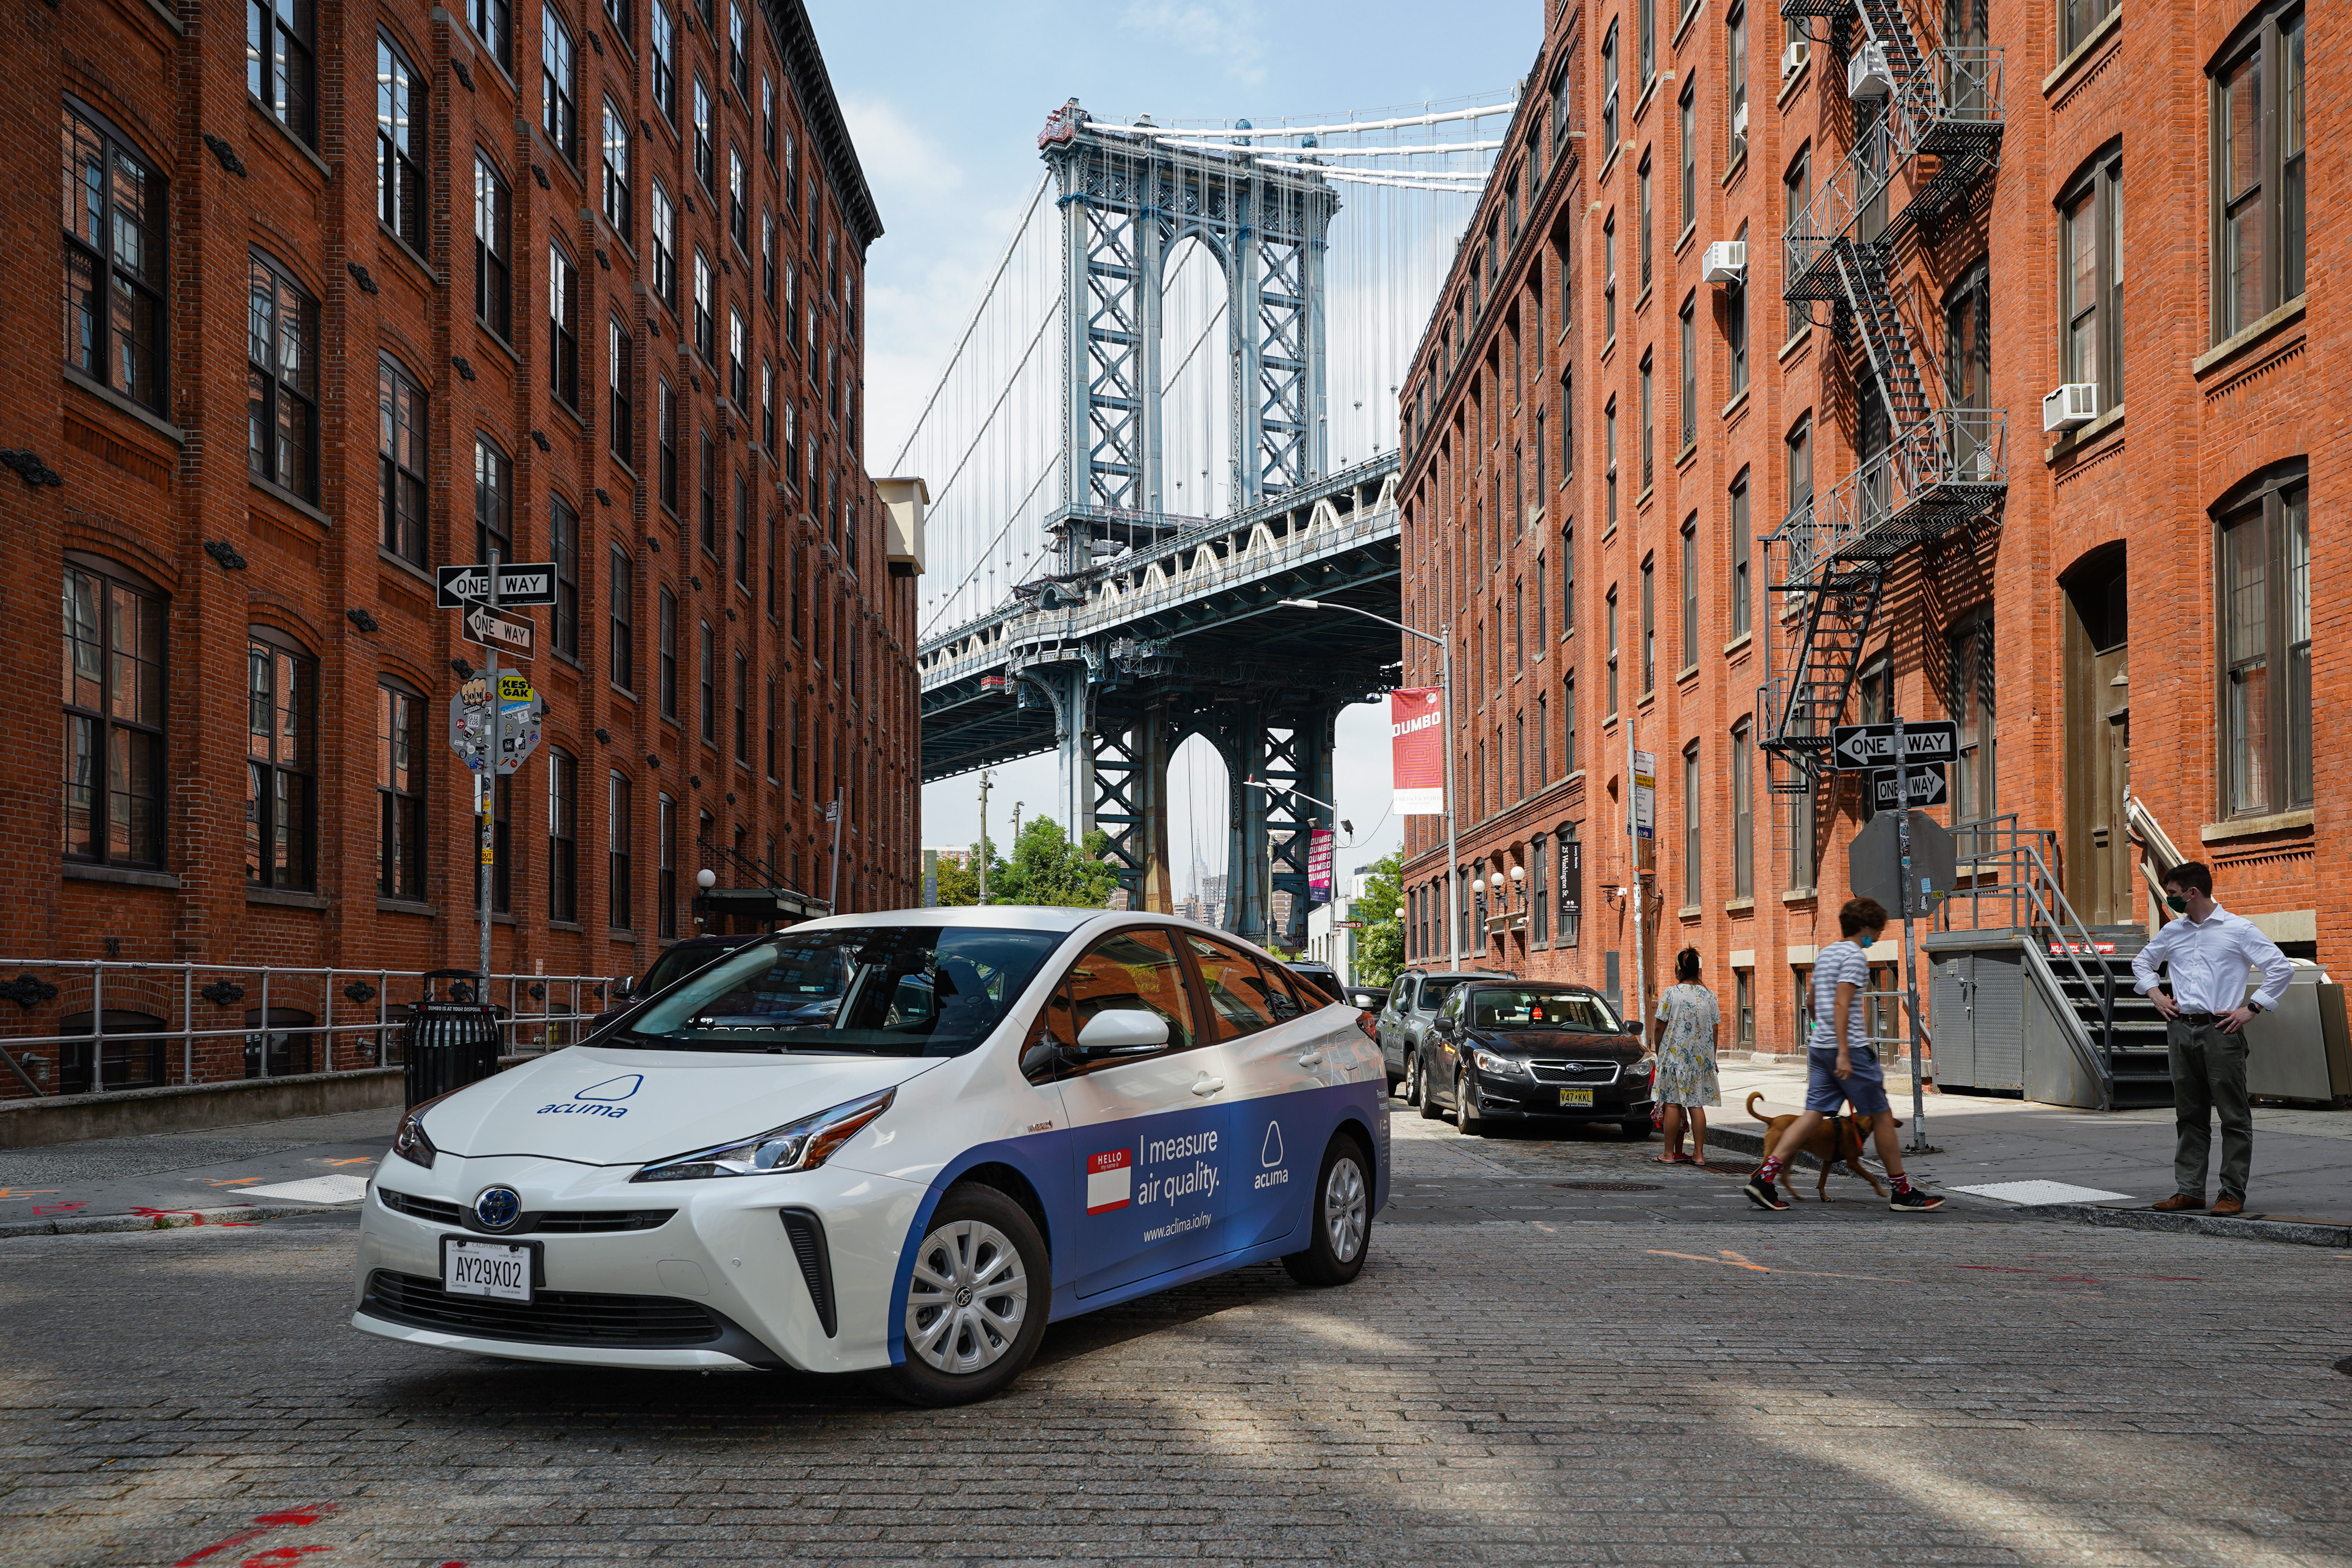 Aclima's vehicle measuring air quality in Brooklyn, New York City